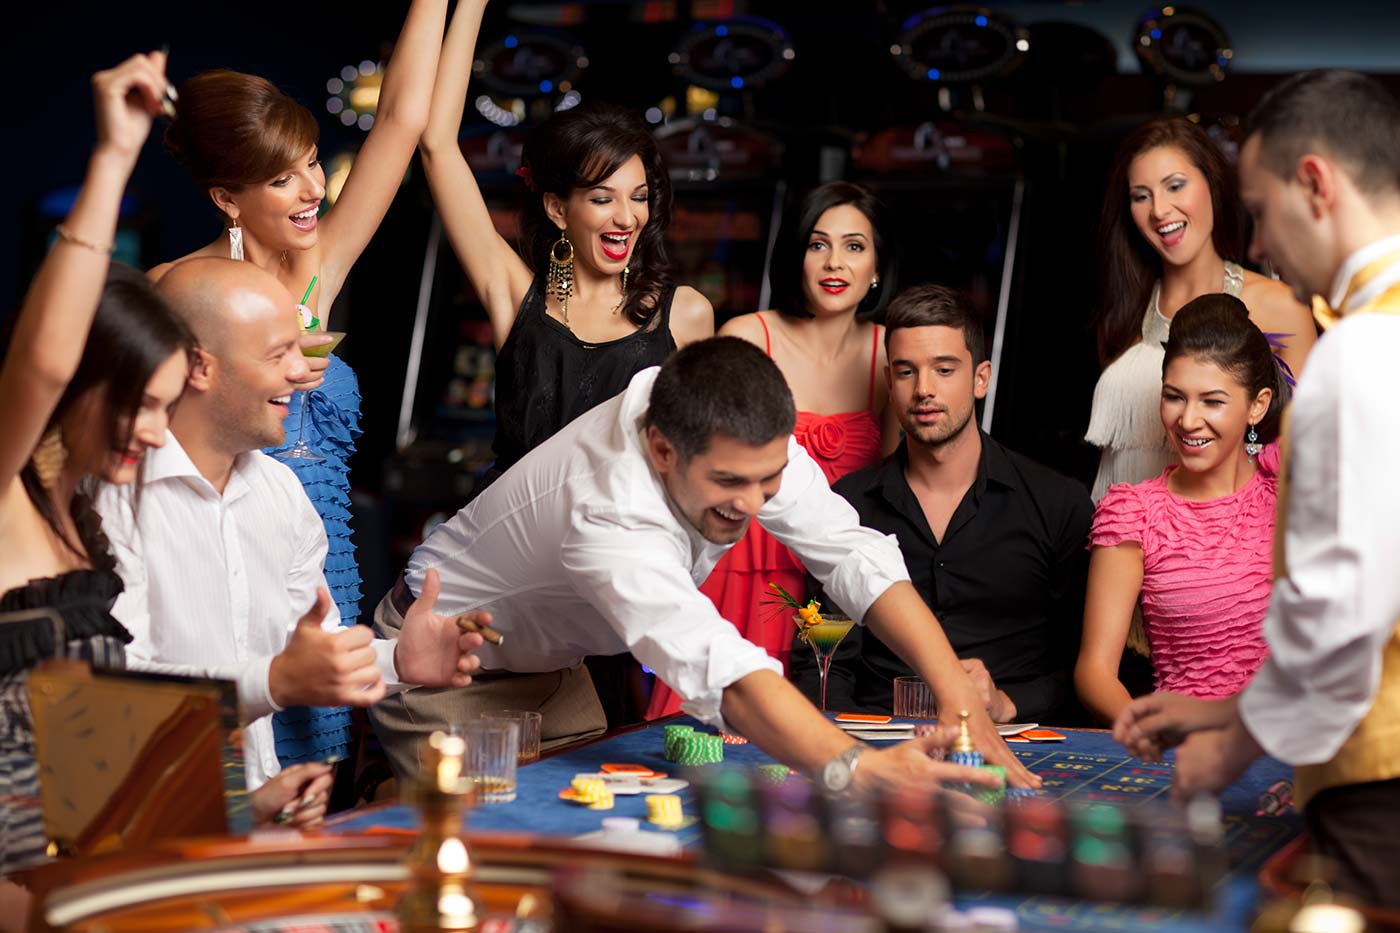 casino fun night TOP 10 of the most popular cities among fans of gambling